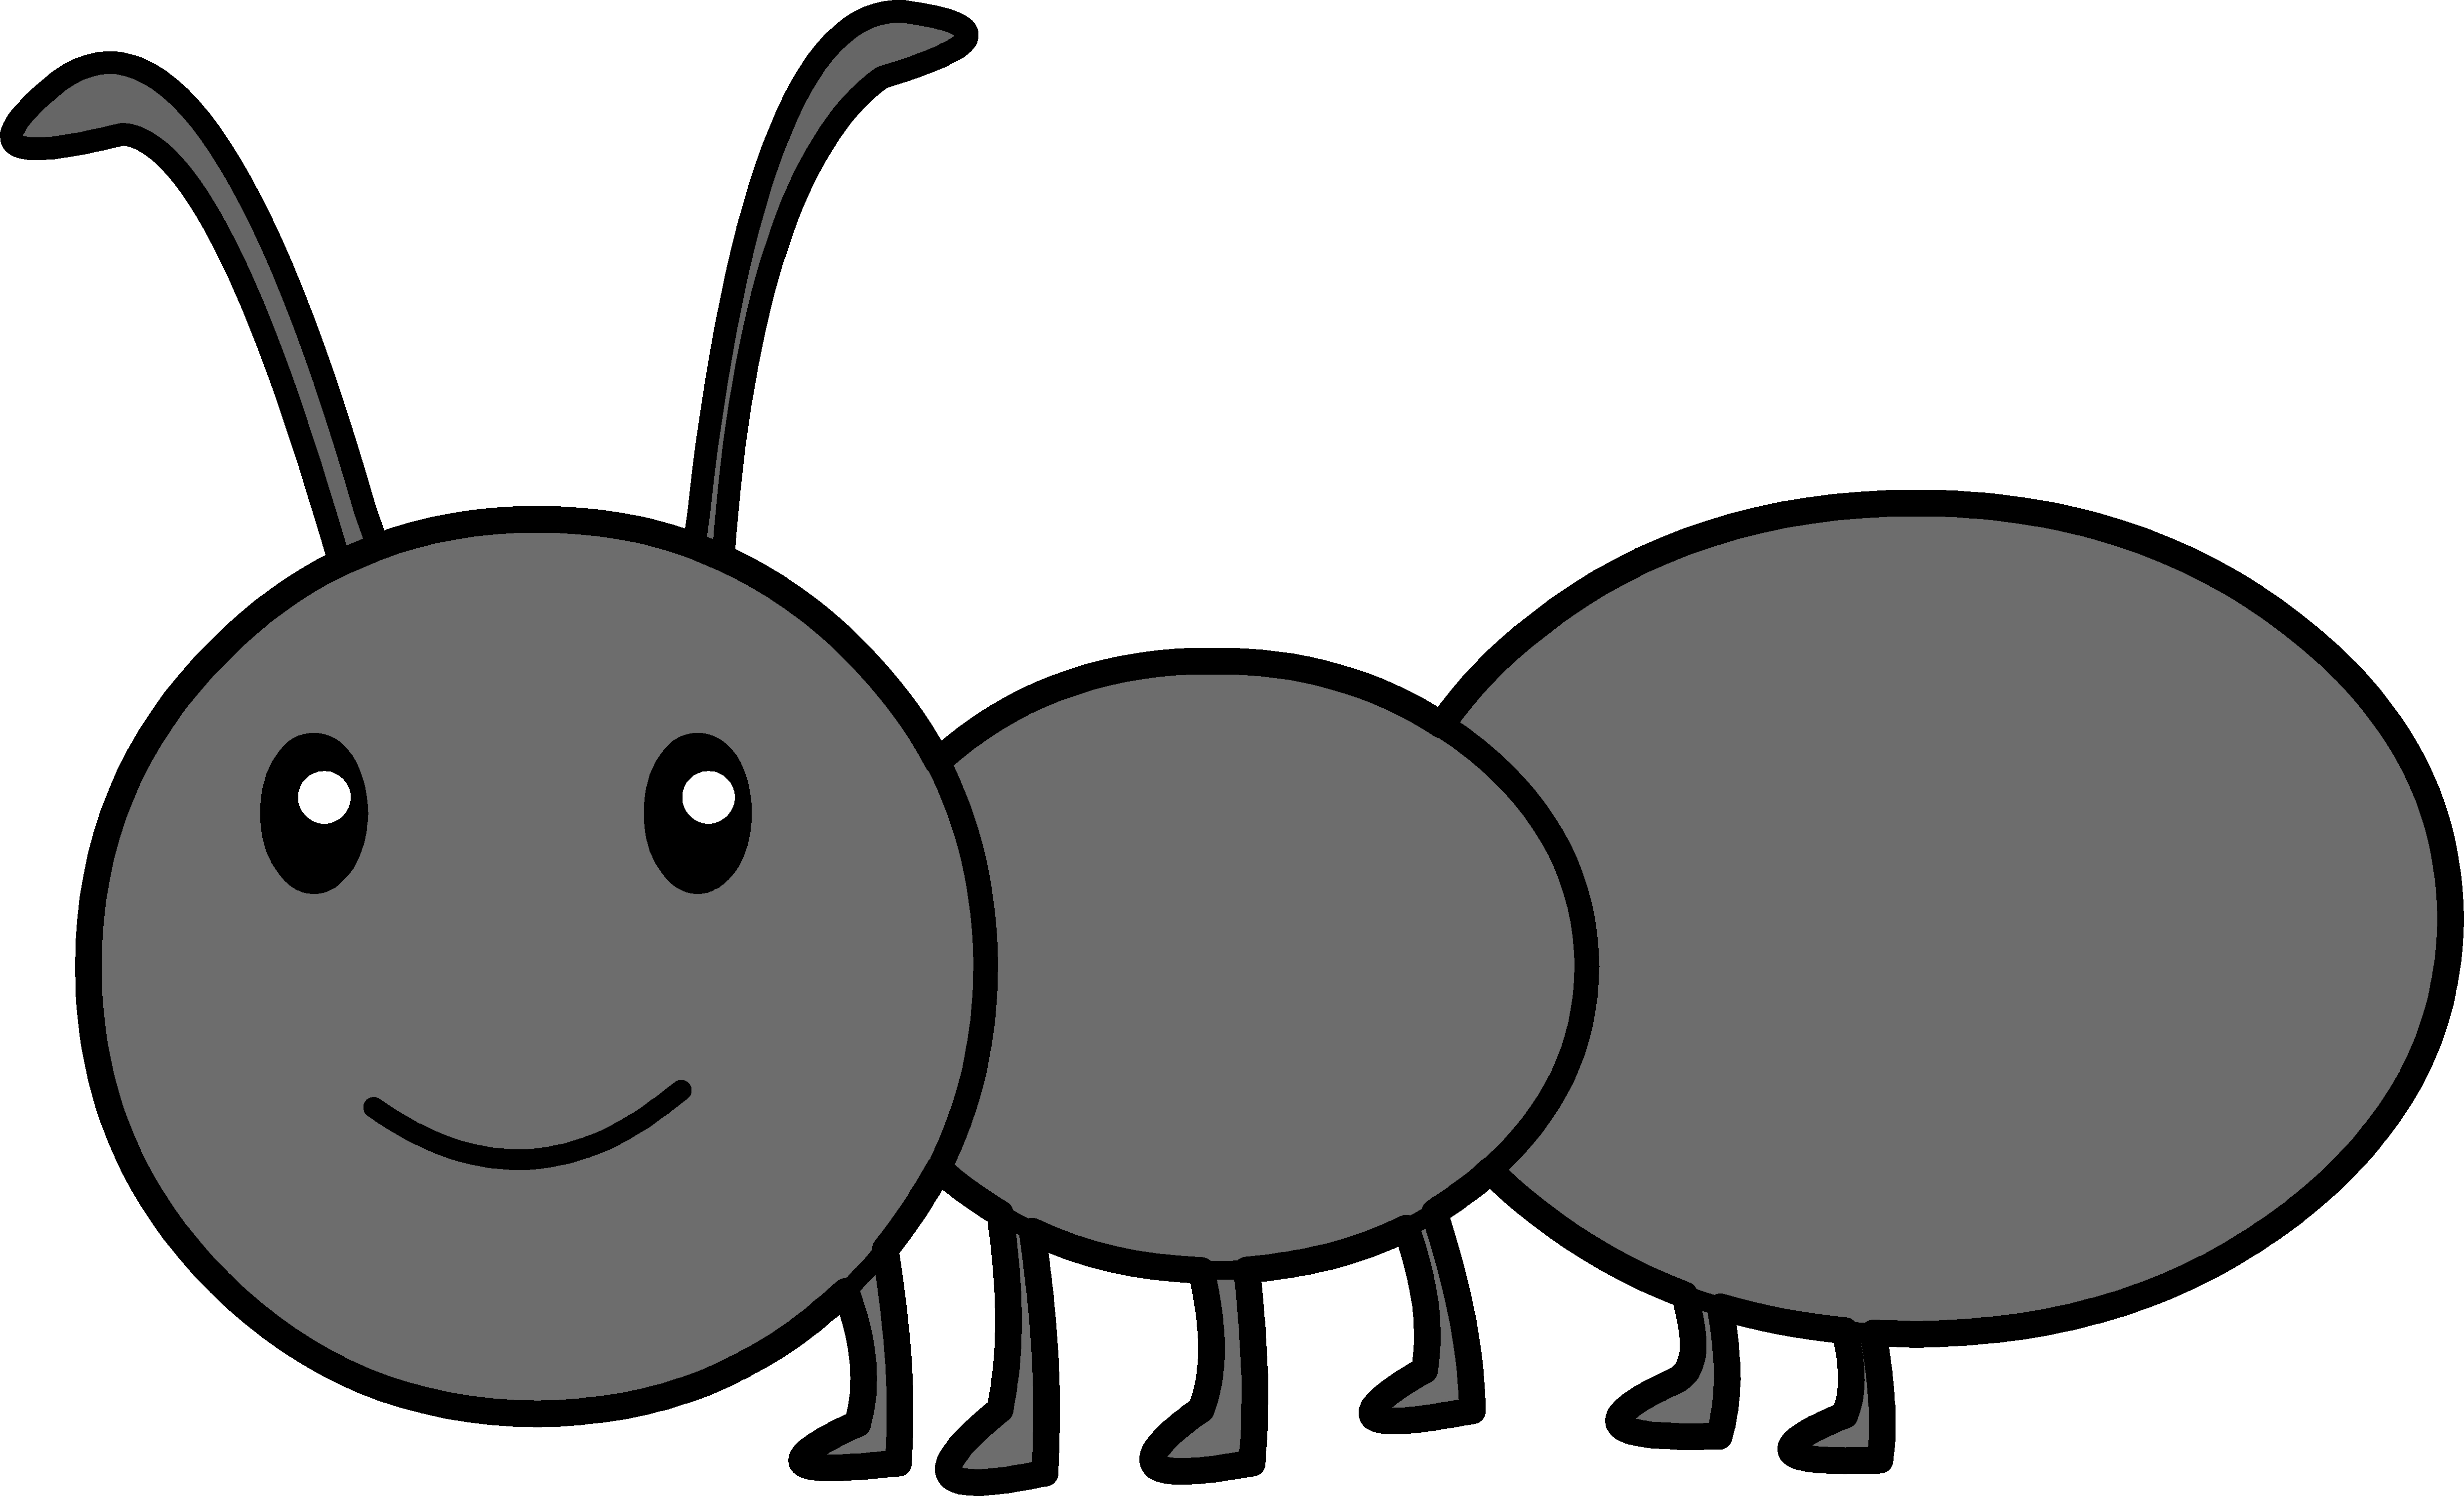 Ants clipart small ant. Awesome collection digital h